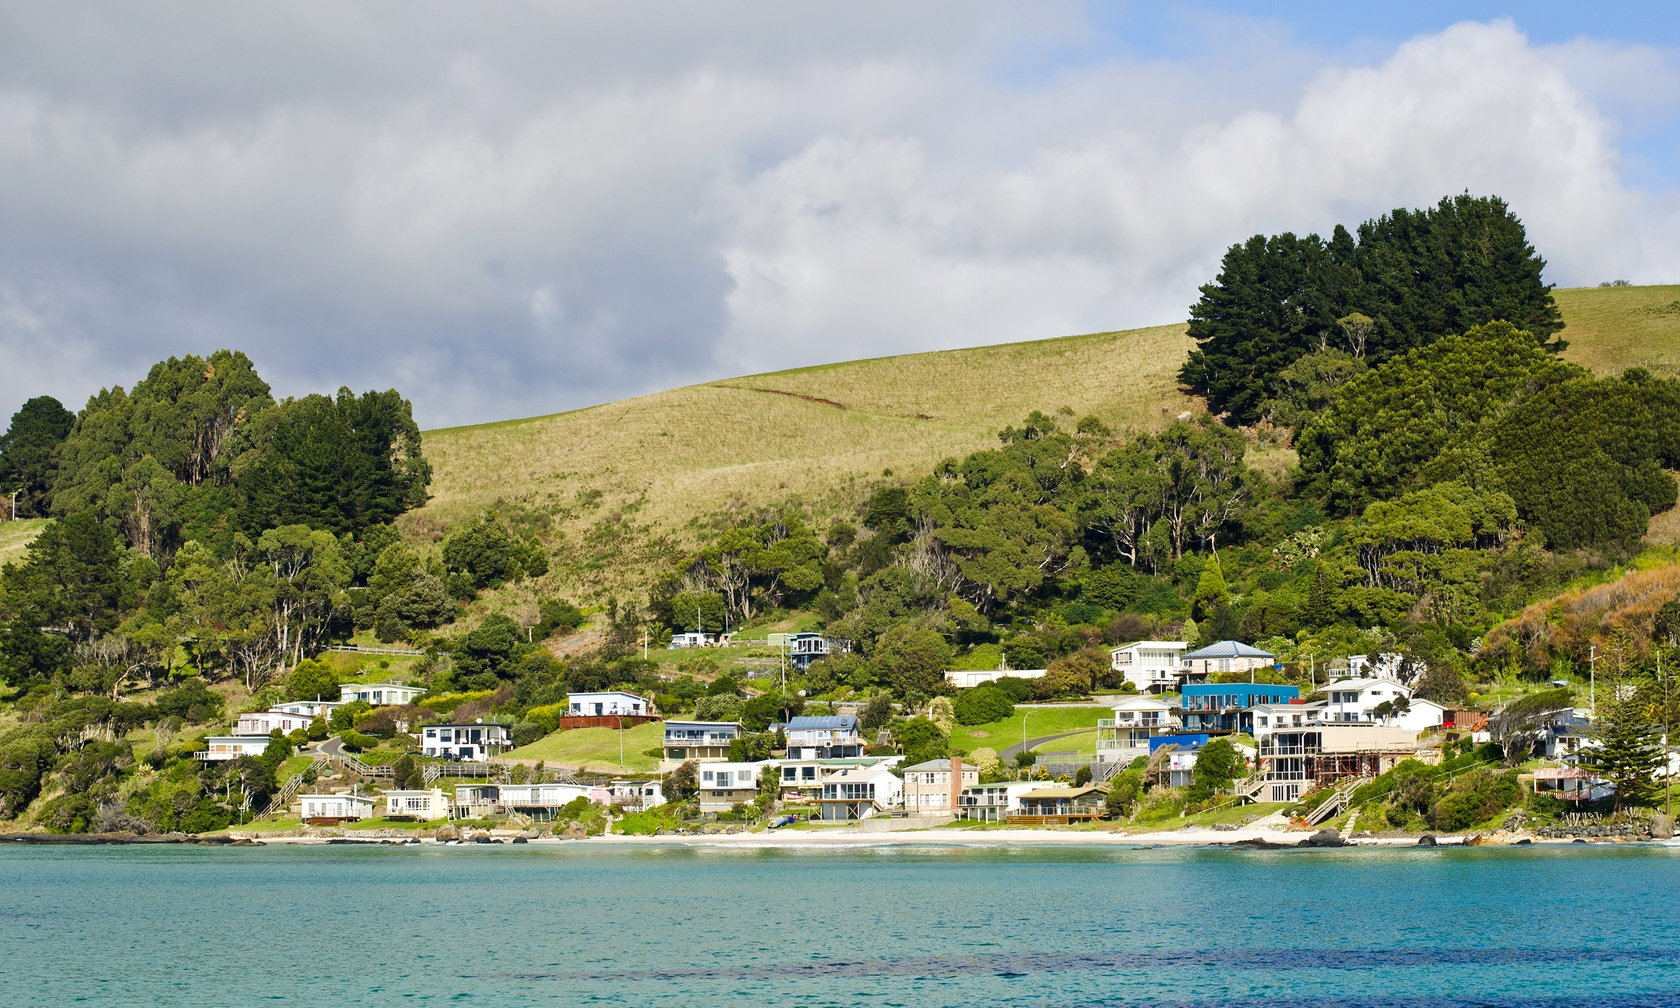 Vacation rentals in Boat Harbour Beach